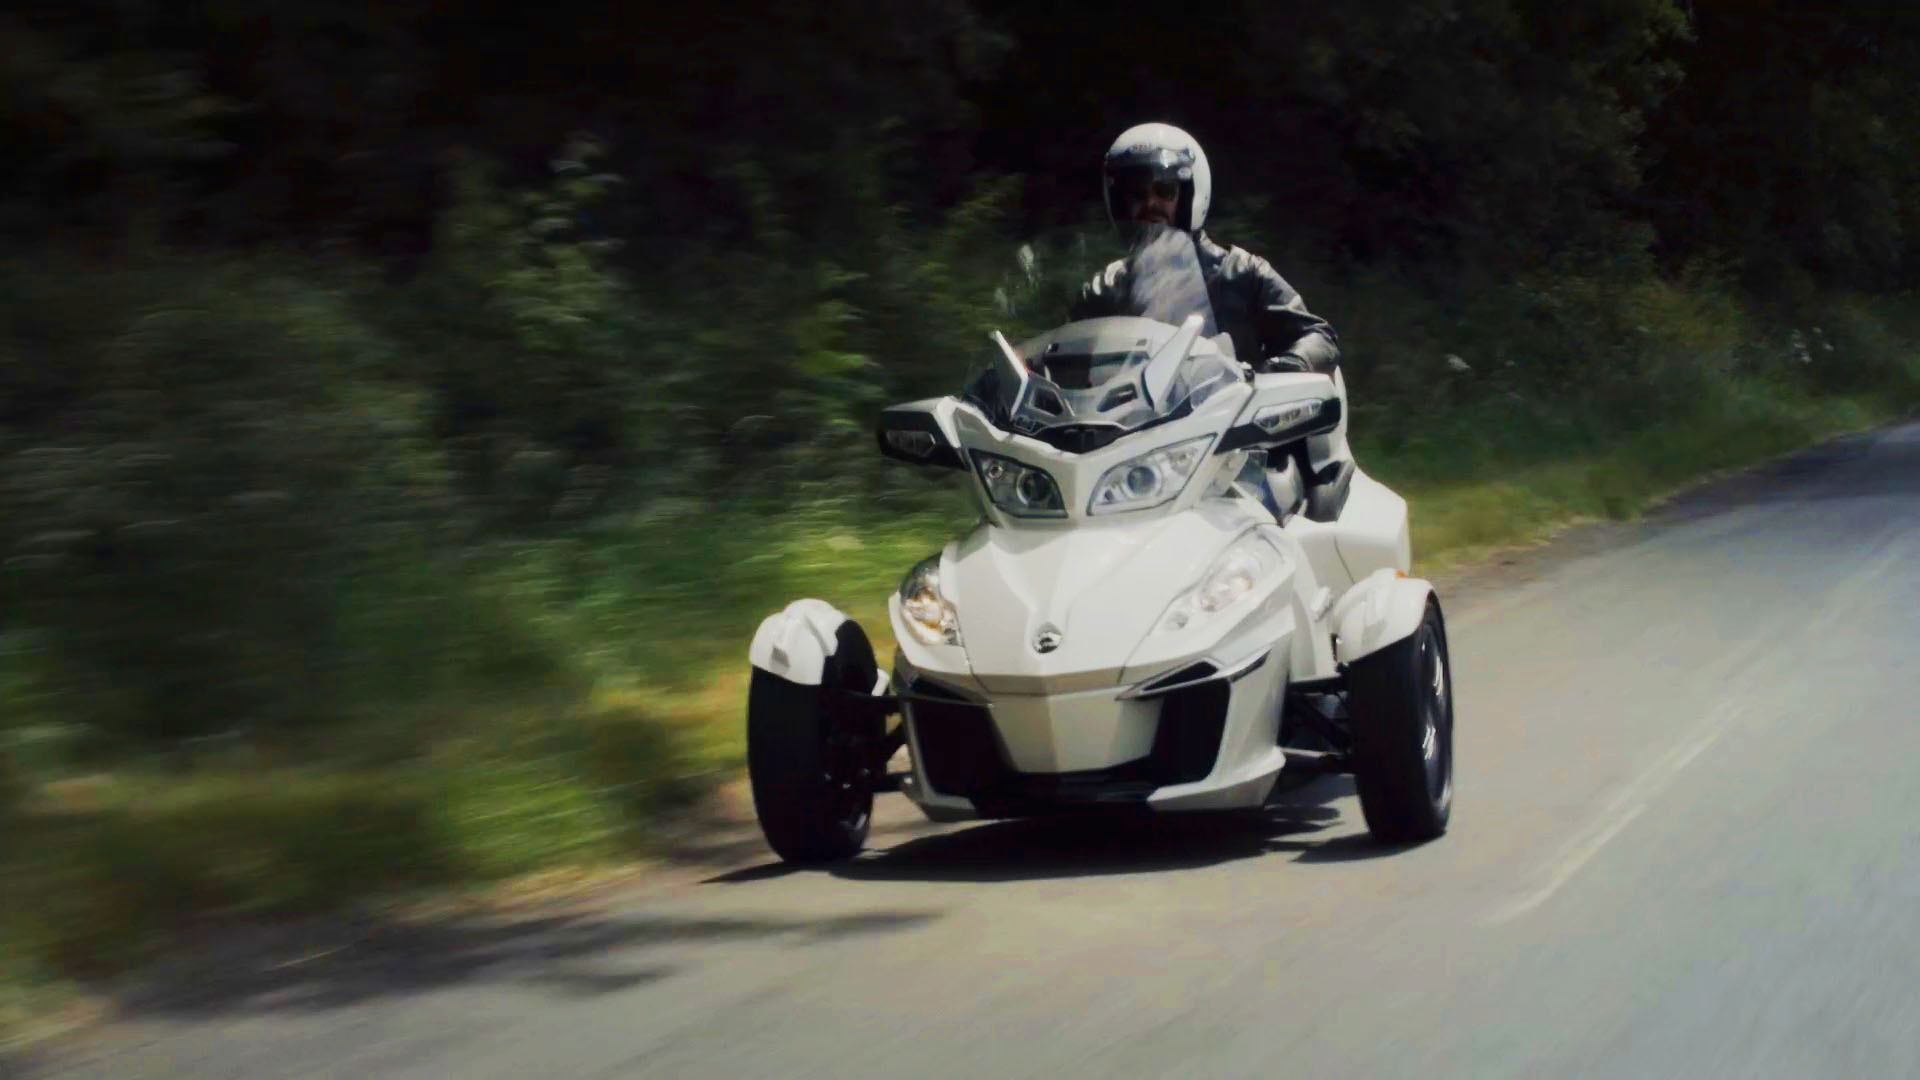 Video: Can-Am Spyder: Sportscar performance on three wheels